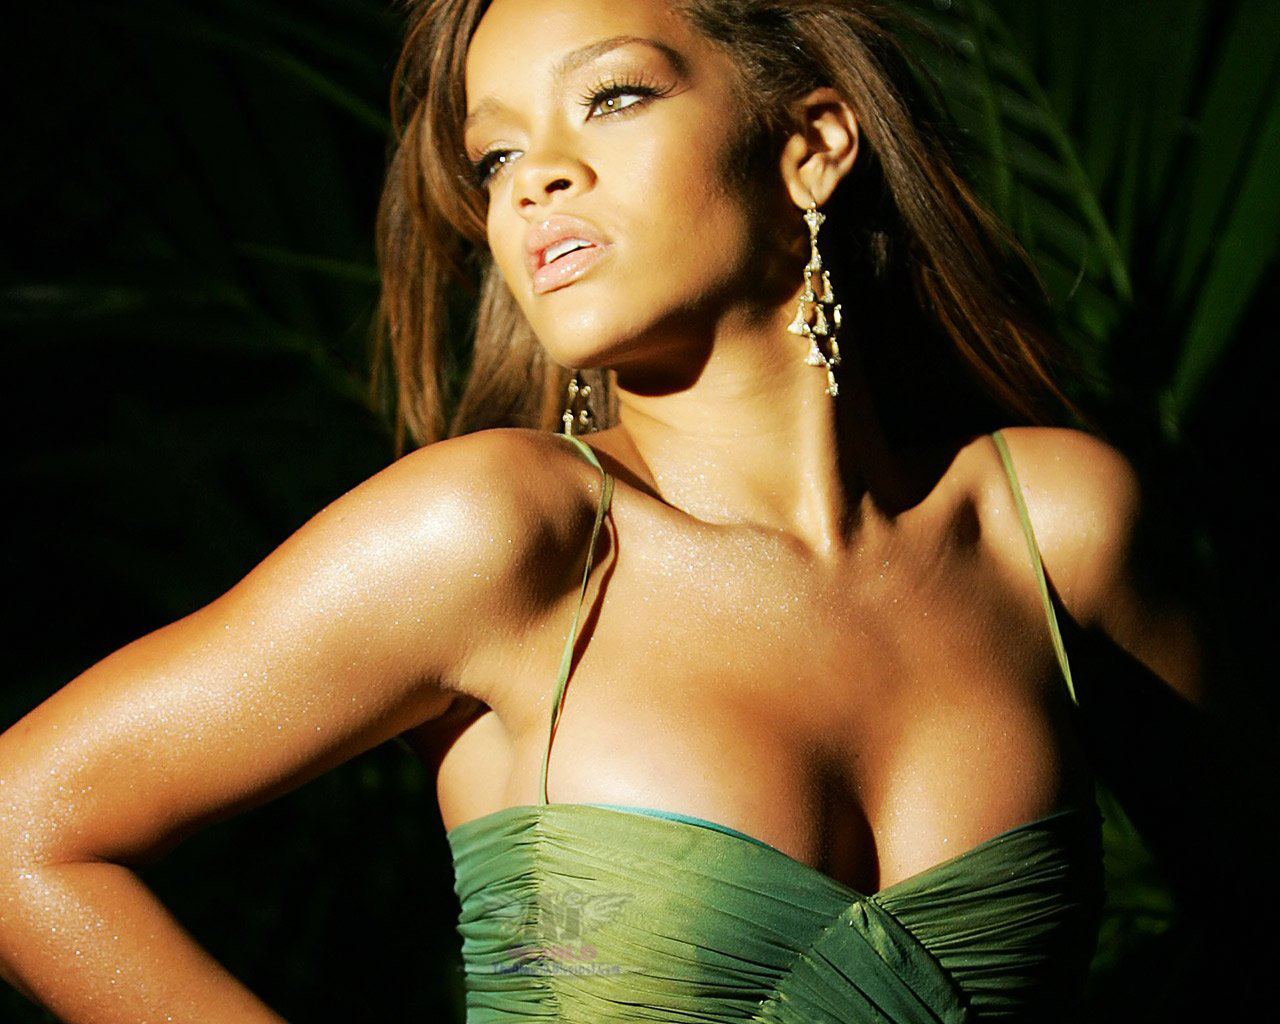 World of wallpapers rihanna hot and bold for Hot wallpapers world